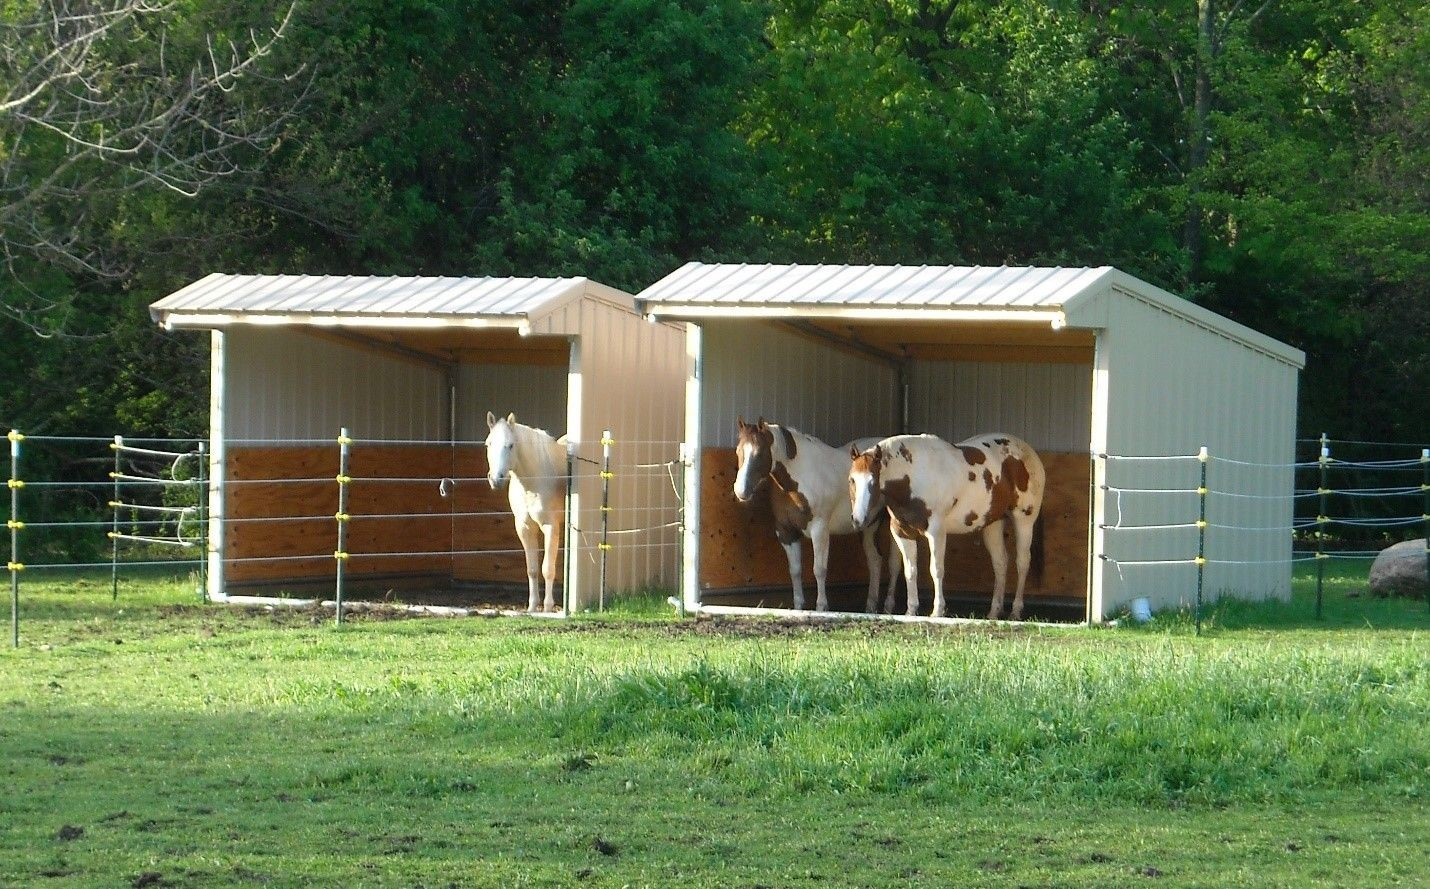 Housing 2 - Interesting facts about horses that you may want to know